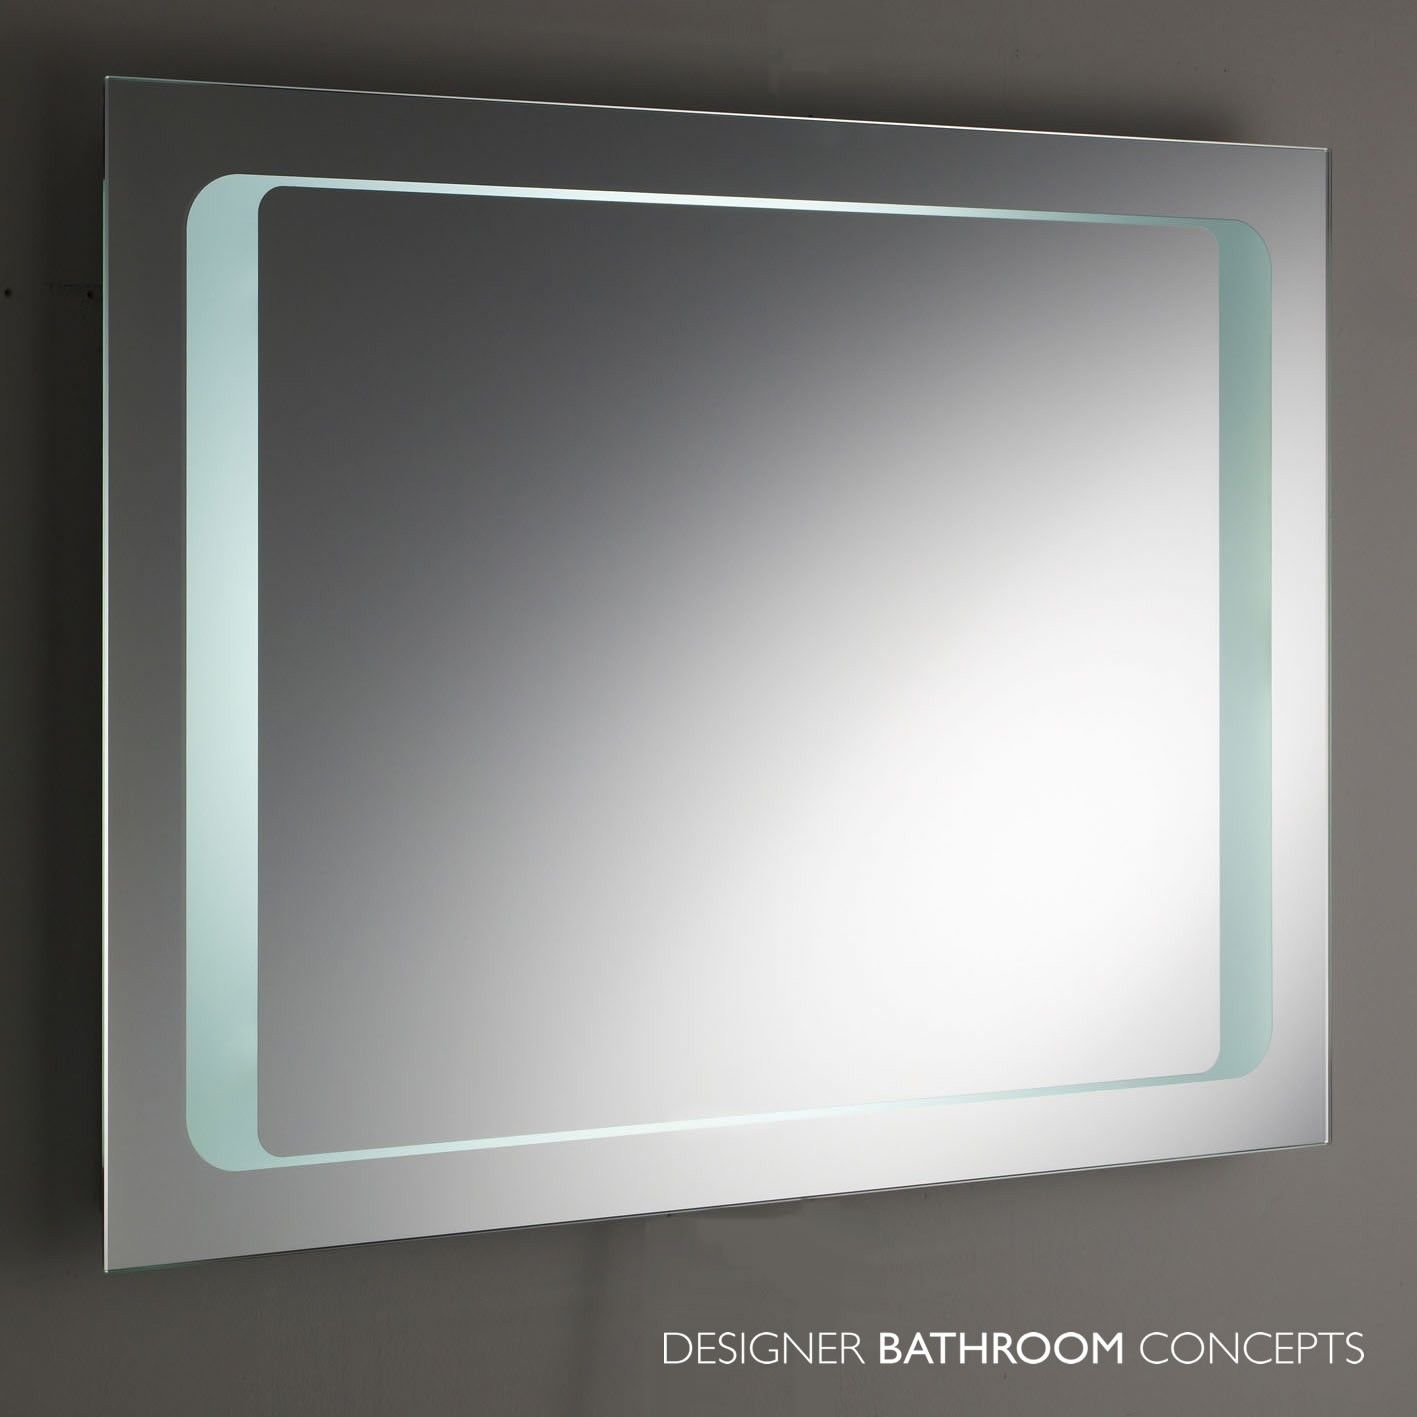 Insight Backlit Designer Bathroom Mirror With Motion Sensor Main For Stylish Interior Designs Ideas